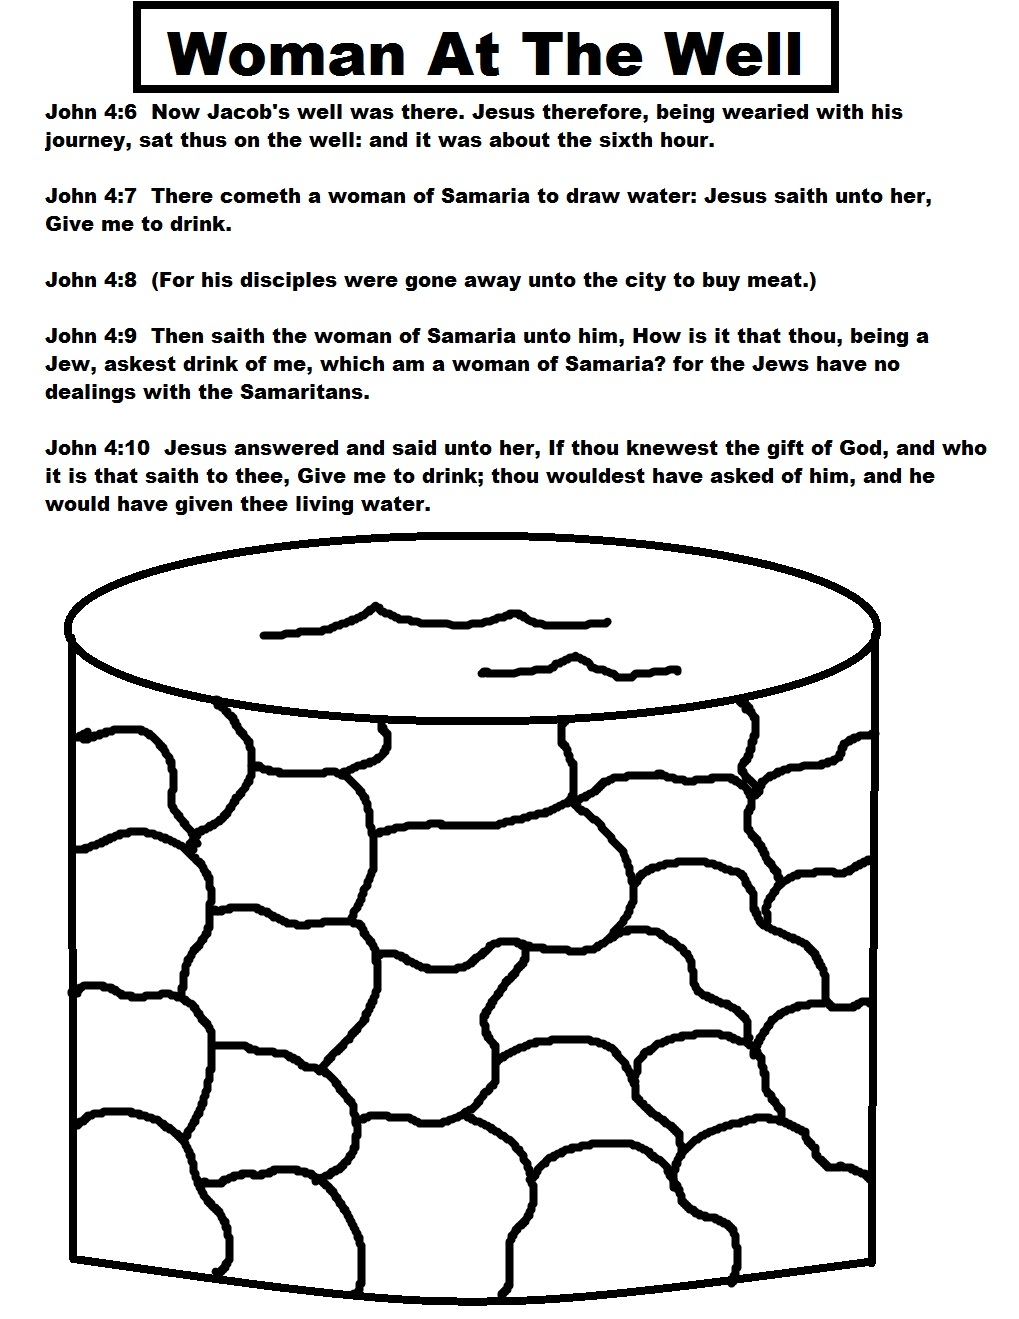 woman at the well coloring page - woman at the well sunday school lesson